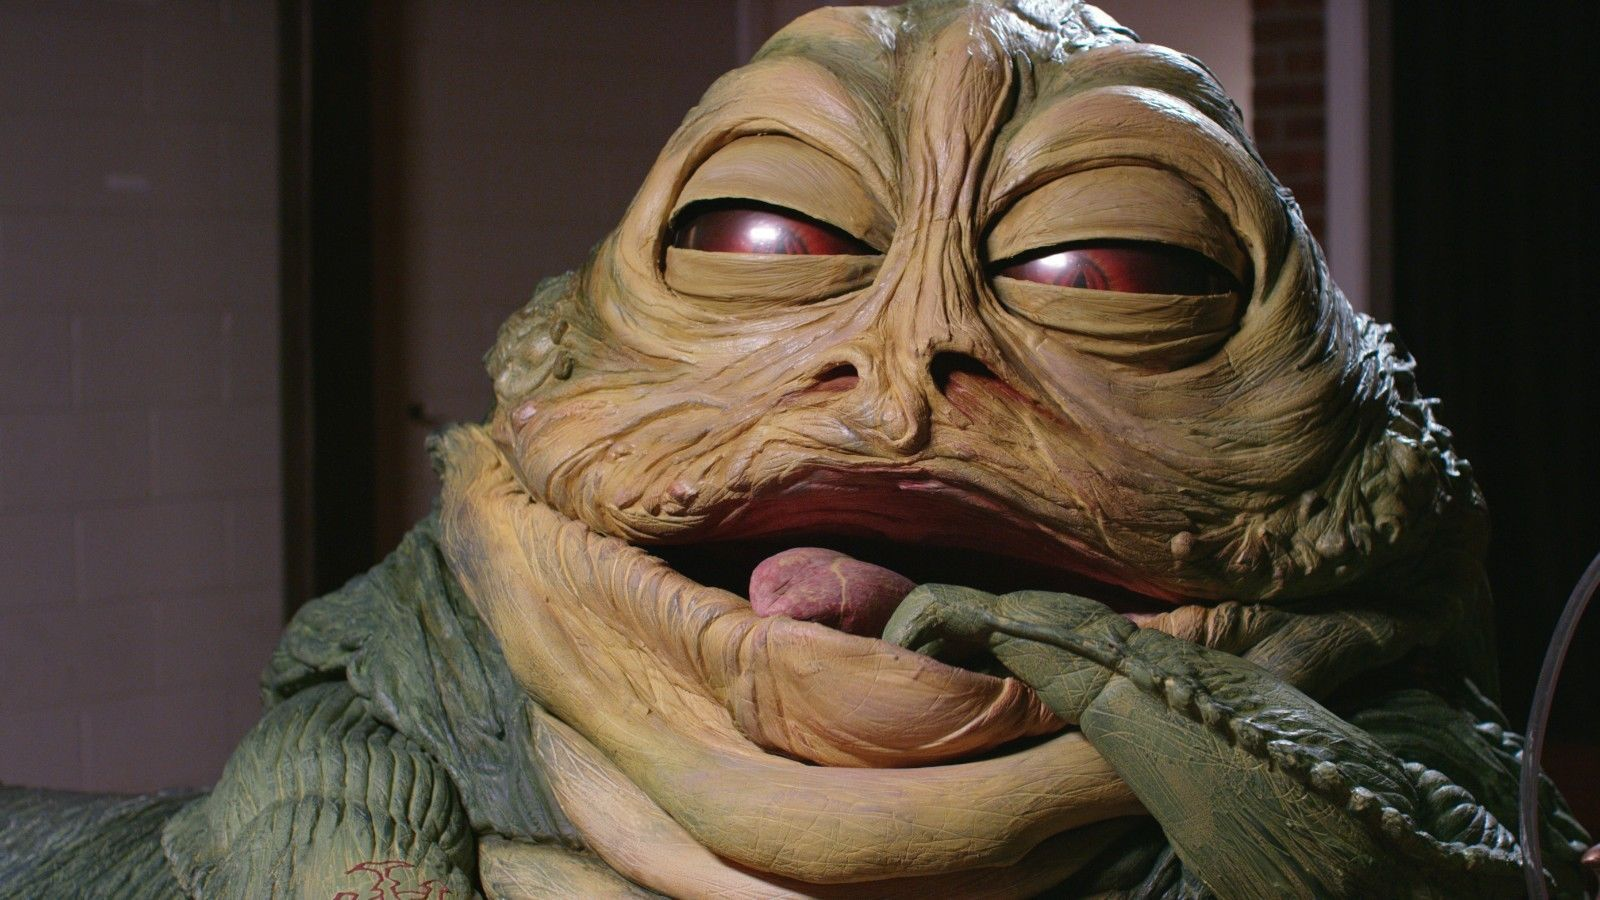 Details About Jabba The Hutt Life Size Star Wars Replica